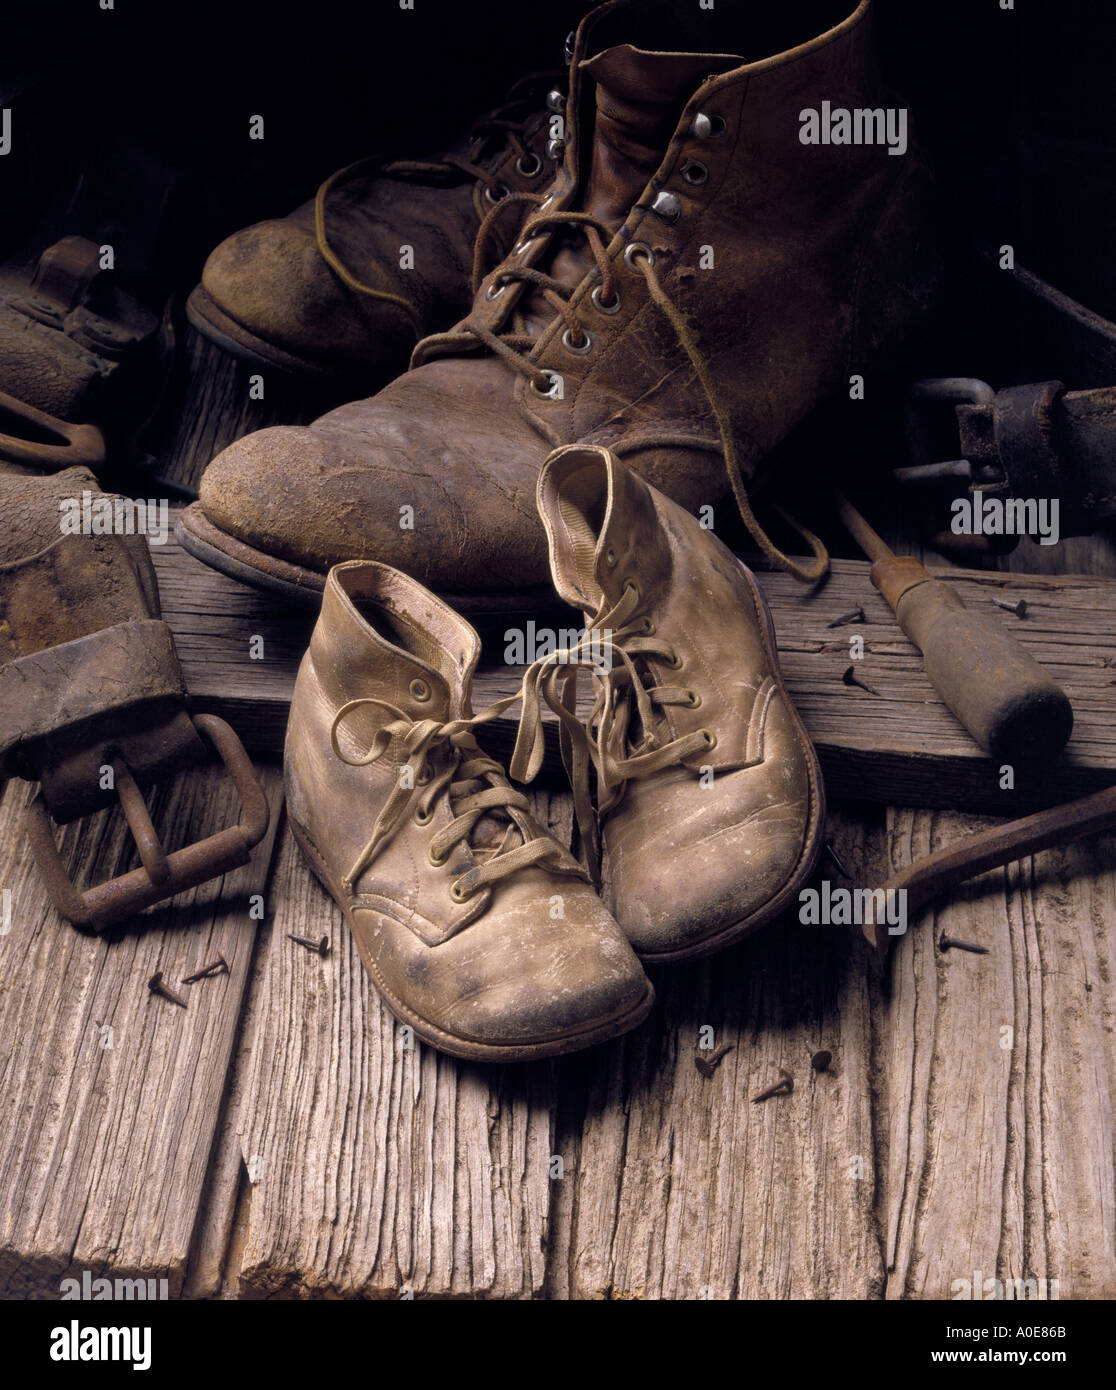 Cobbler Shoes Stock Photos Images Alamy D Island Style Hikers Dm Mens Leather Cokelat Old Antique And Baby In Garage Or Attic Setting